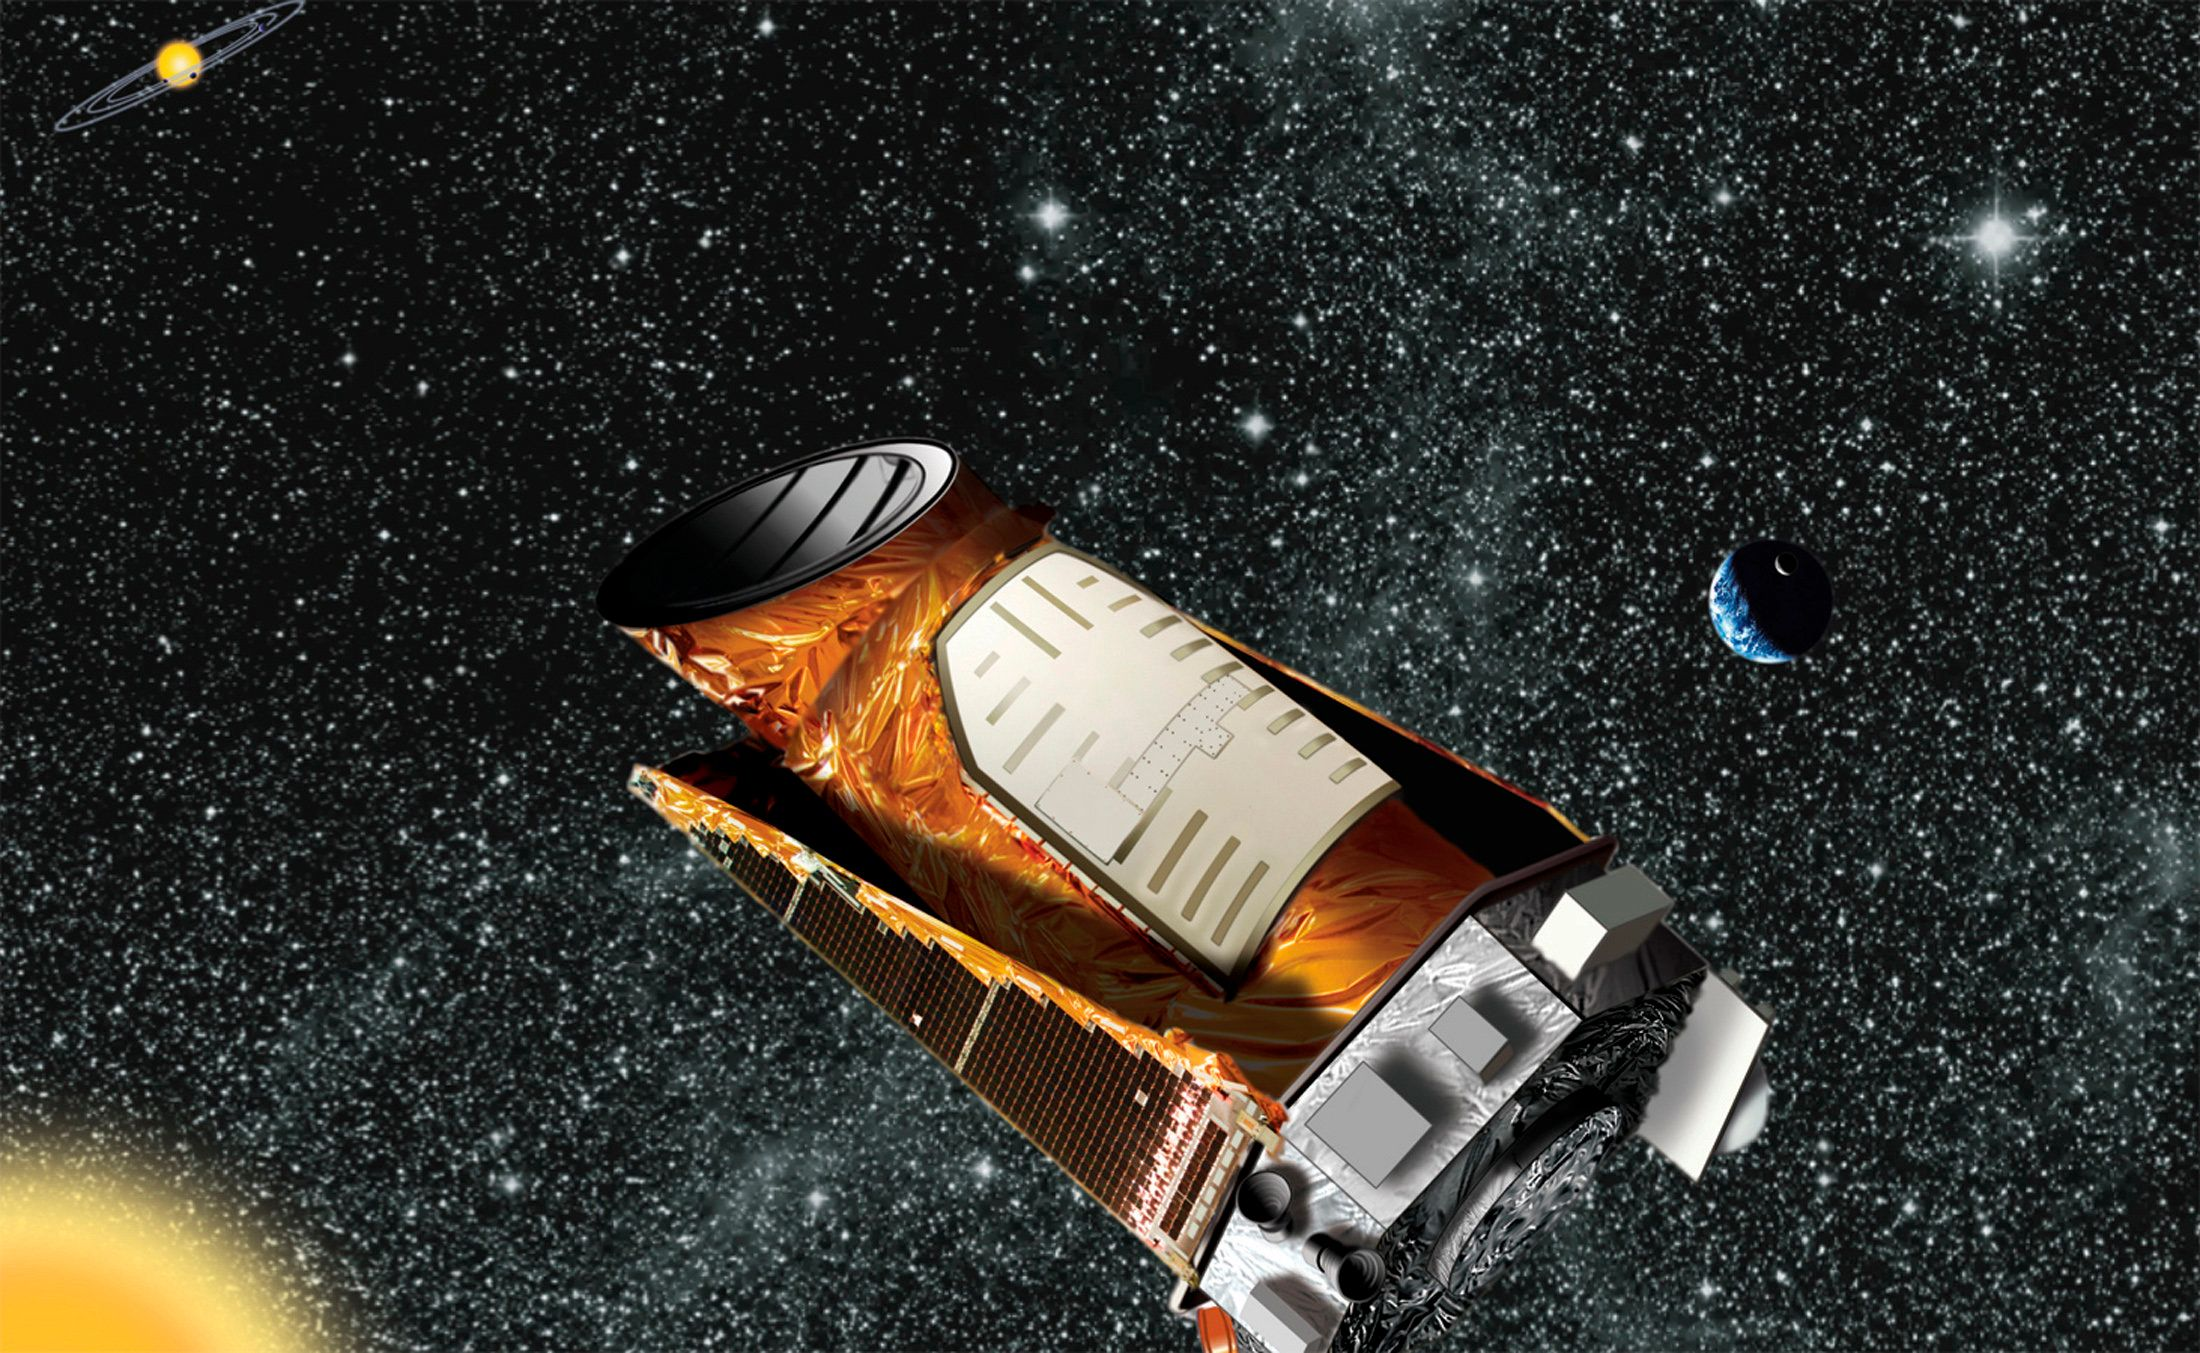 An artist's composite of the Kepler telescope is seen in this undated NASA handout image. Two of Kepler's four gyroscope-like reaction wheels, which are used to precisely point the spacecraft, have failed and NASA reported on August 15, 2013, that it is ending attempts to fully recover the spacecraft.  REUTERS/NASA/Handout via Reuters  (UNITED STATES - Tags: SCIENCE TECHNOLOGY) ATTENTION EDITORS - FOR EDITORIAL USE ONLY. NOT FOR SALE FOR MARKETING OR ADVERTISING CAMPAIGNS. THIS IMAGE HAS BEEN SUPPLIED BY A THIRD PARTY. IT IS DISTRIBUTED, EXACTLY AS RECEIVED BY REUTERS, AS A SERVICE TO CLIENTS